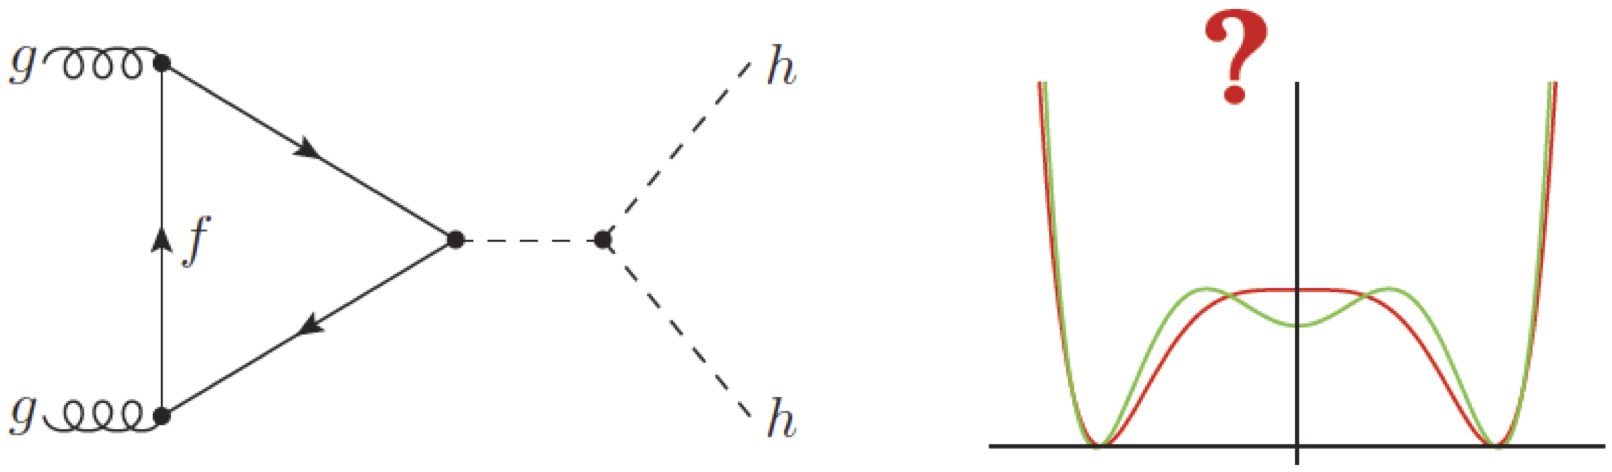 Higgs pair production